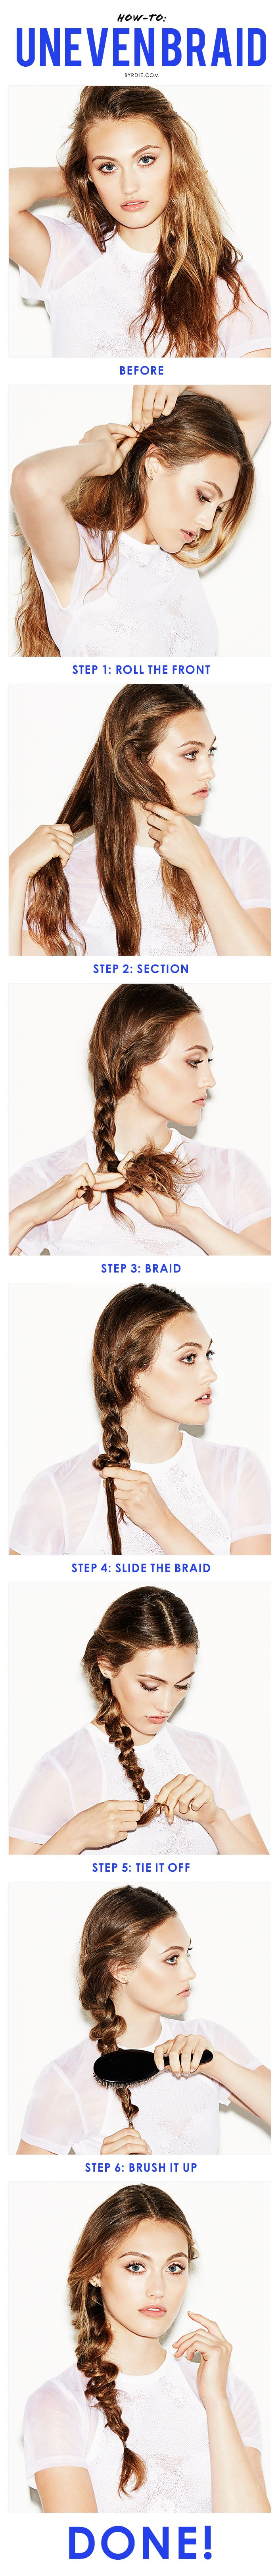 How to create a textured uneven braid